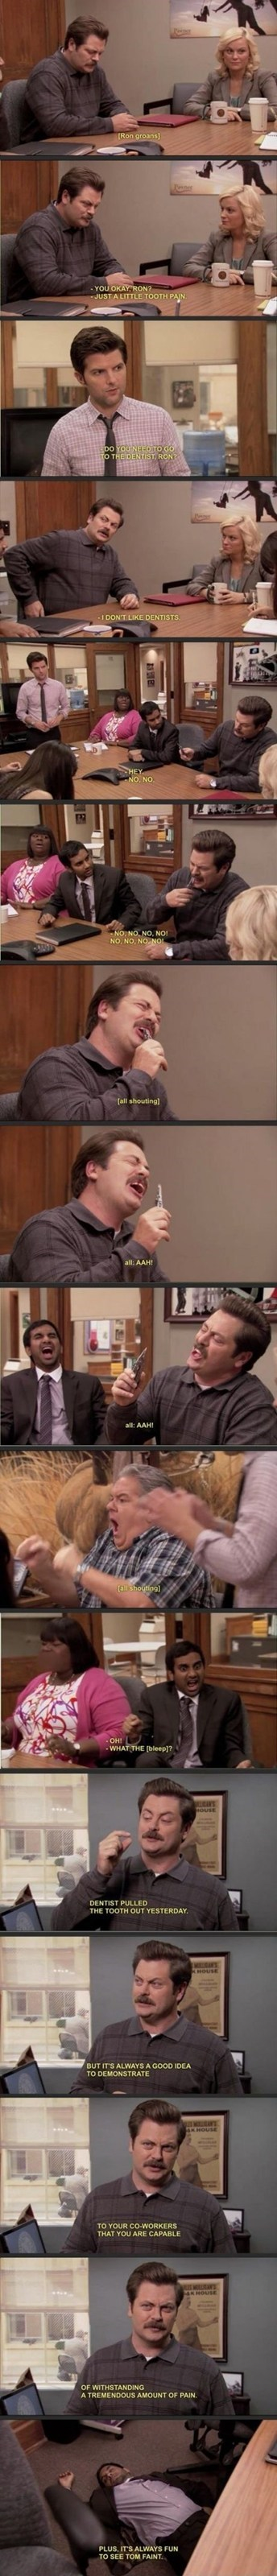 parks and recreation,ron swanson,teeth,funny